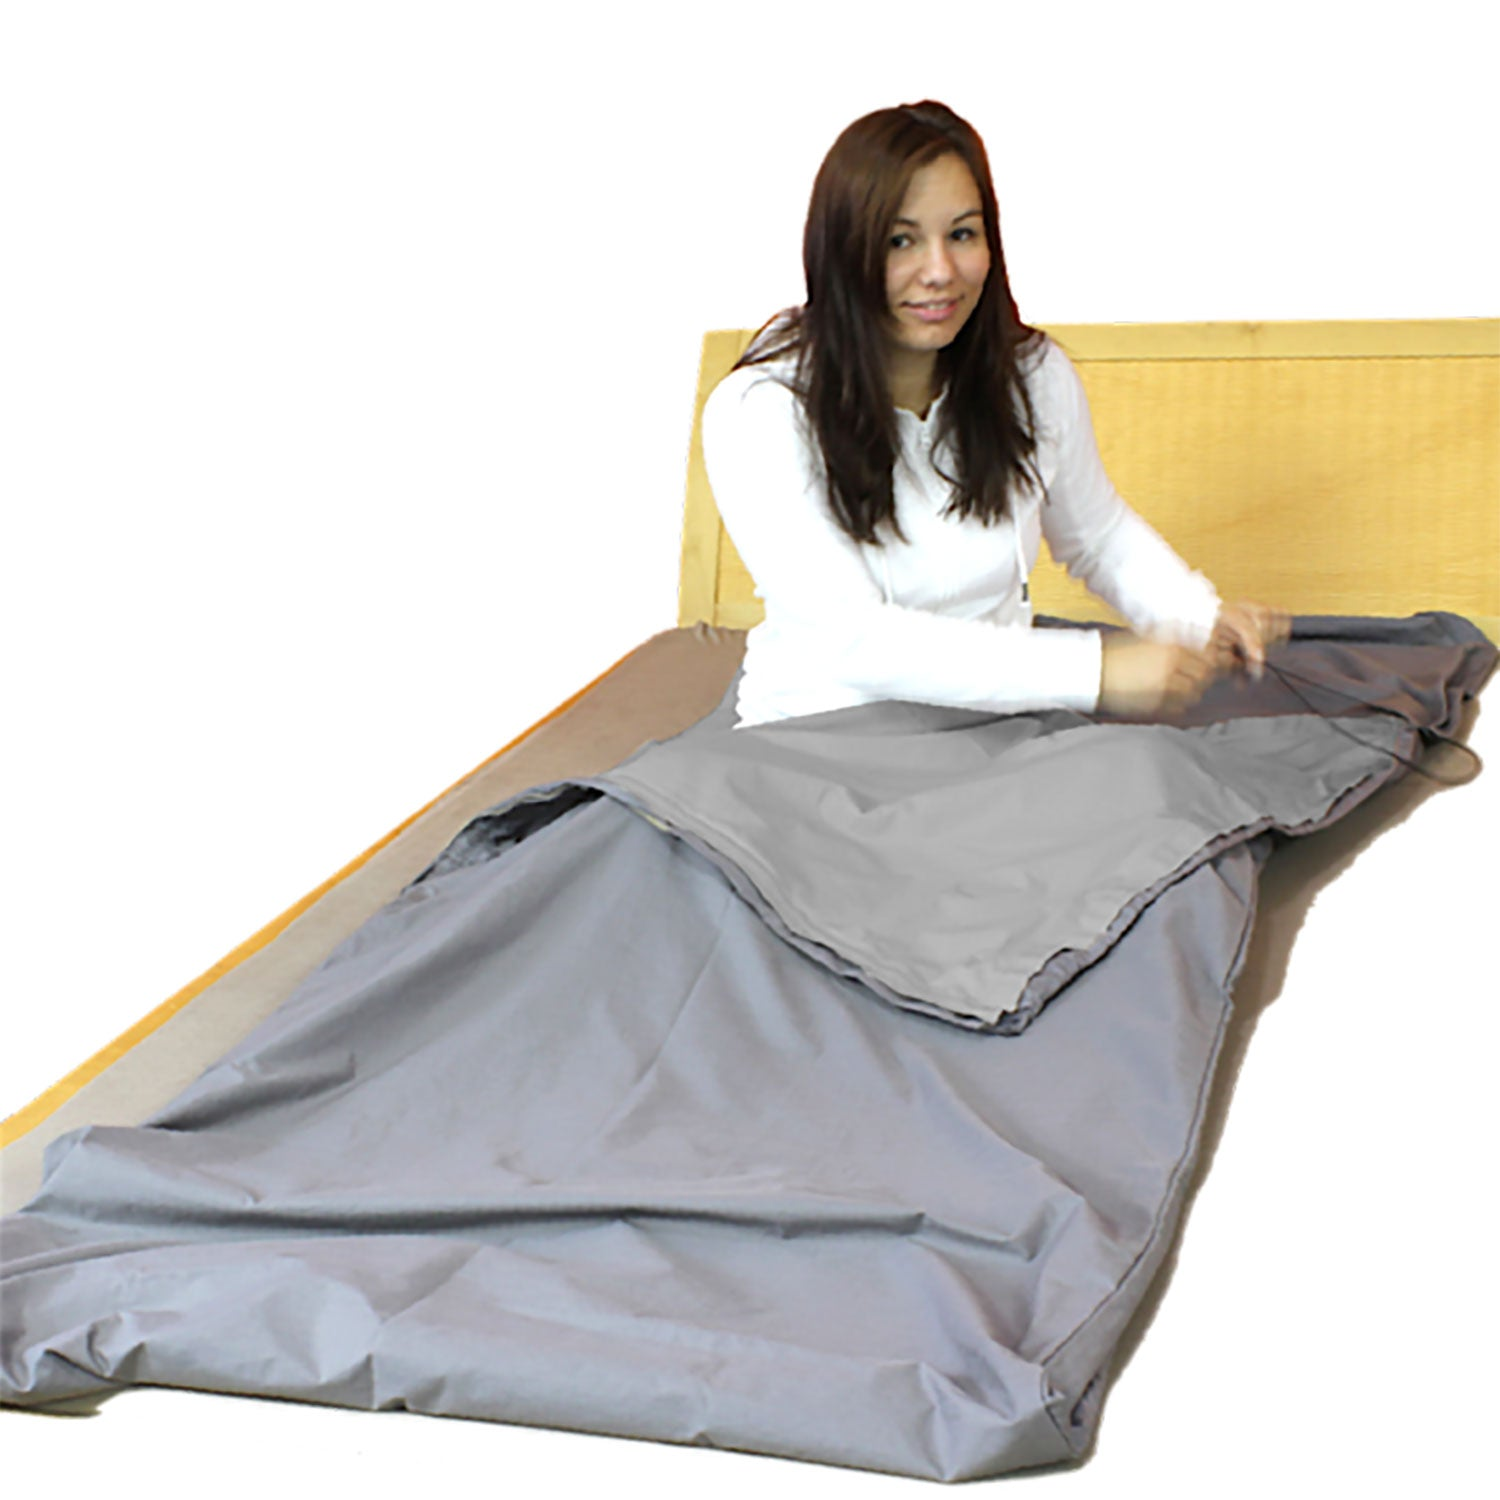 STEEL-GRAY Sleeping Bag for Shielding High Frequency EMF (1 bag)